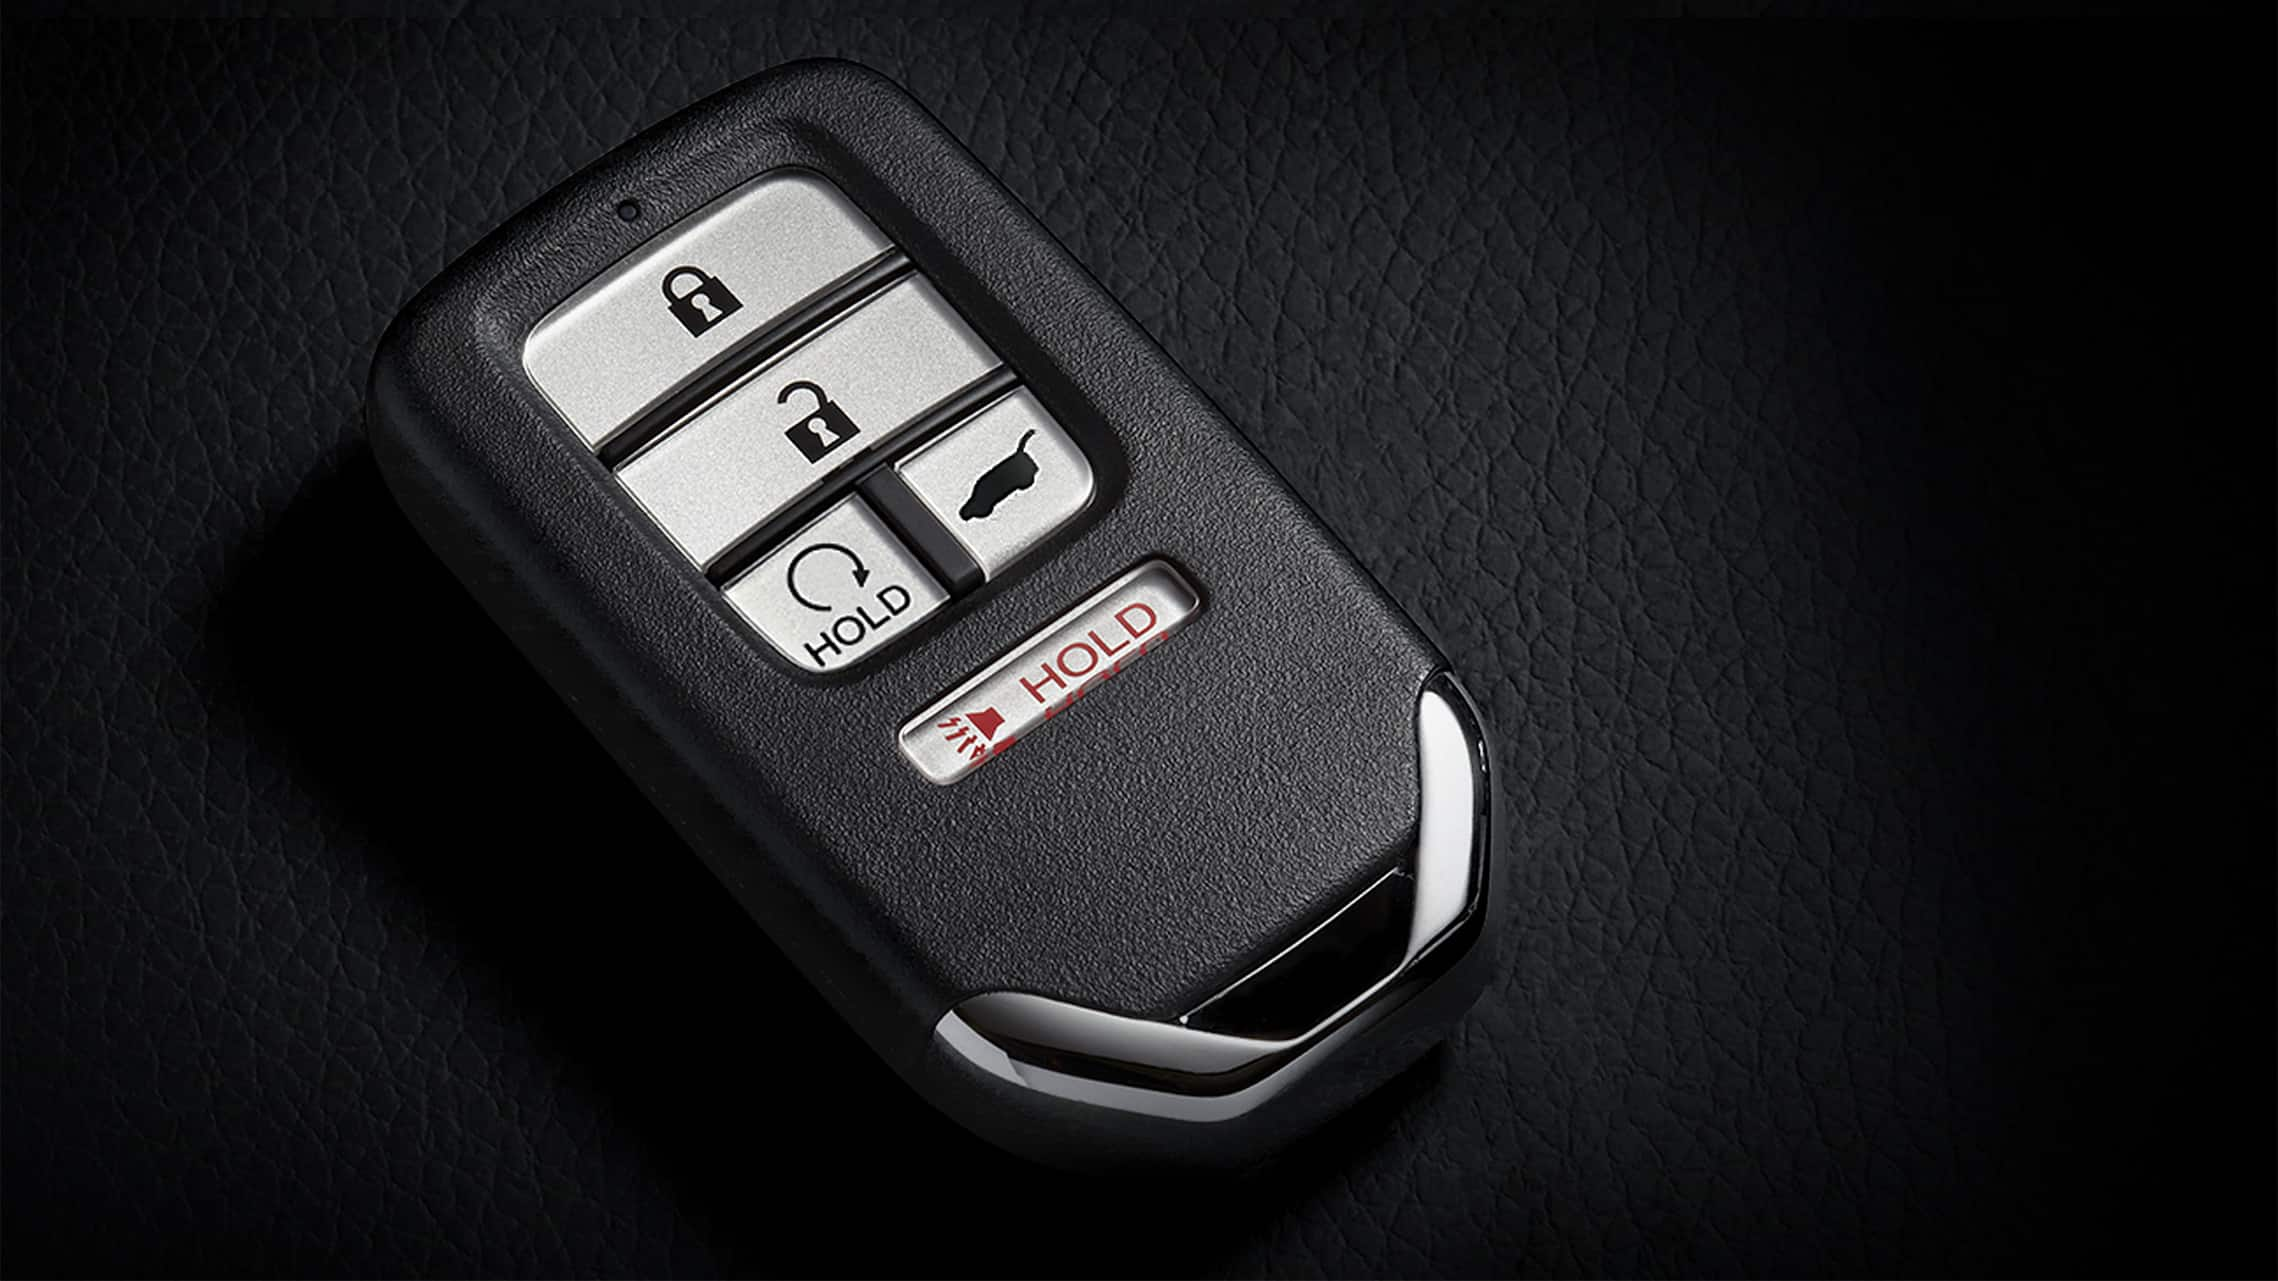 Key fob with remote engine start button detail for the 2021 Honda Civic Sport Touring Hatchback.